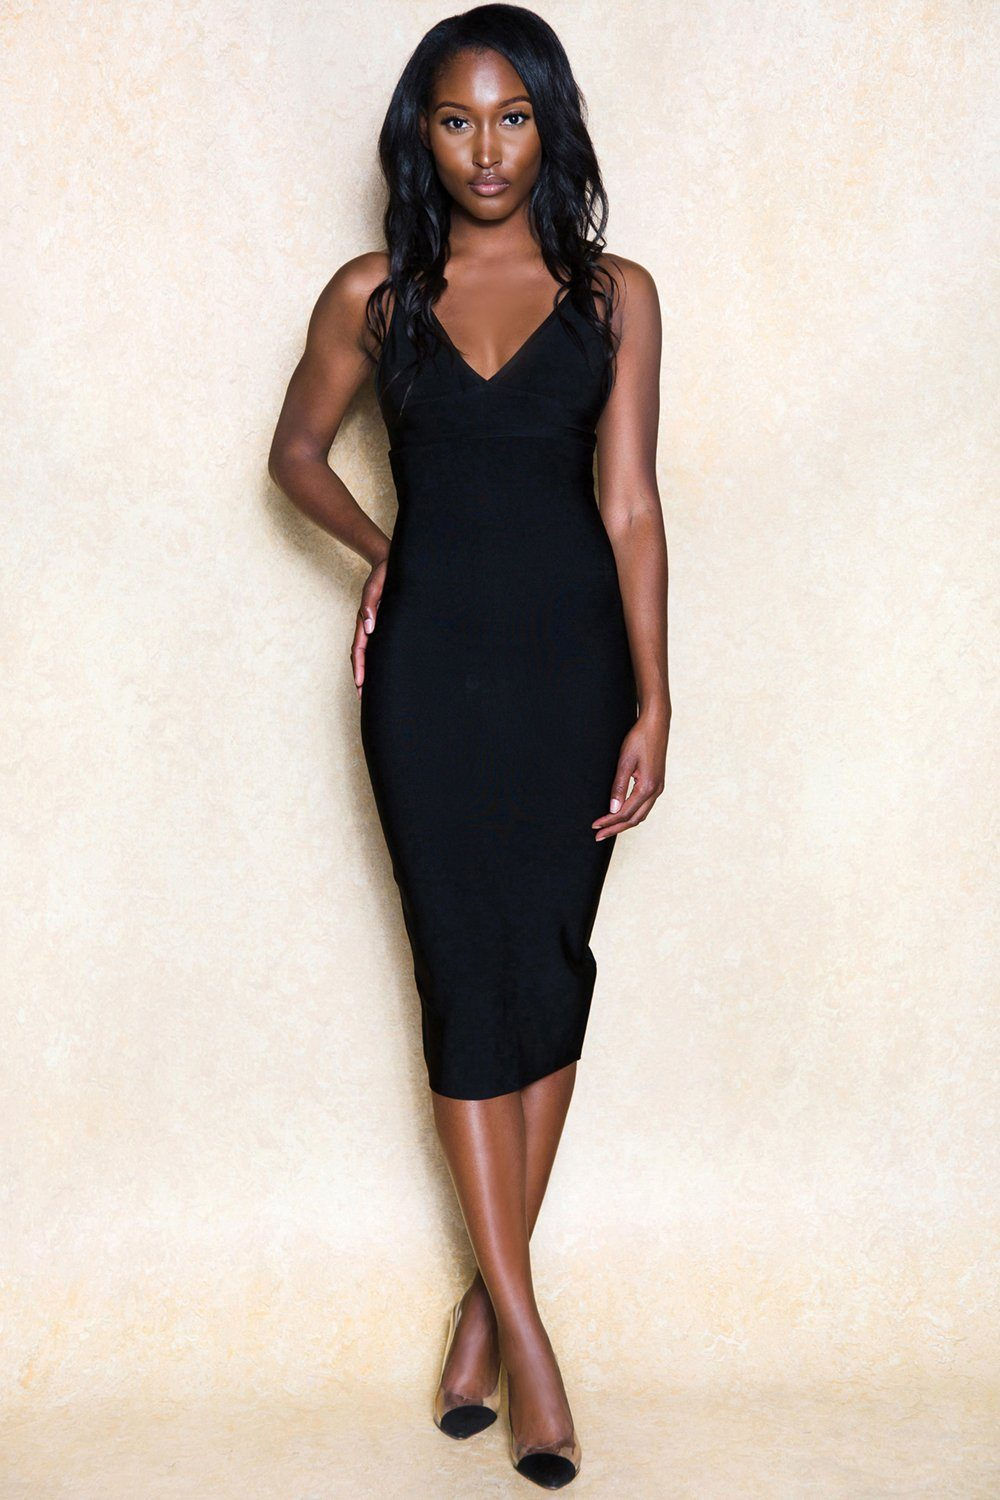 Koralino Black Single Strap Stretch Bodycon Midi Dress - Klasha